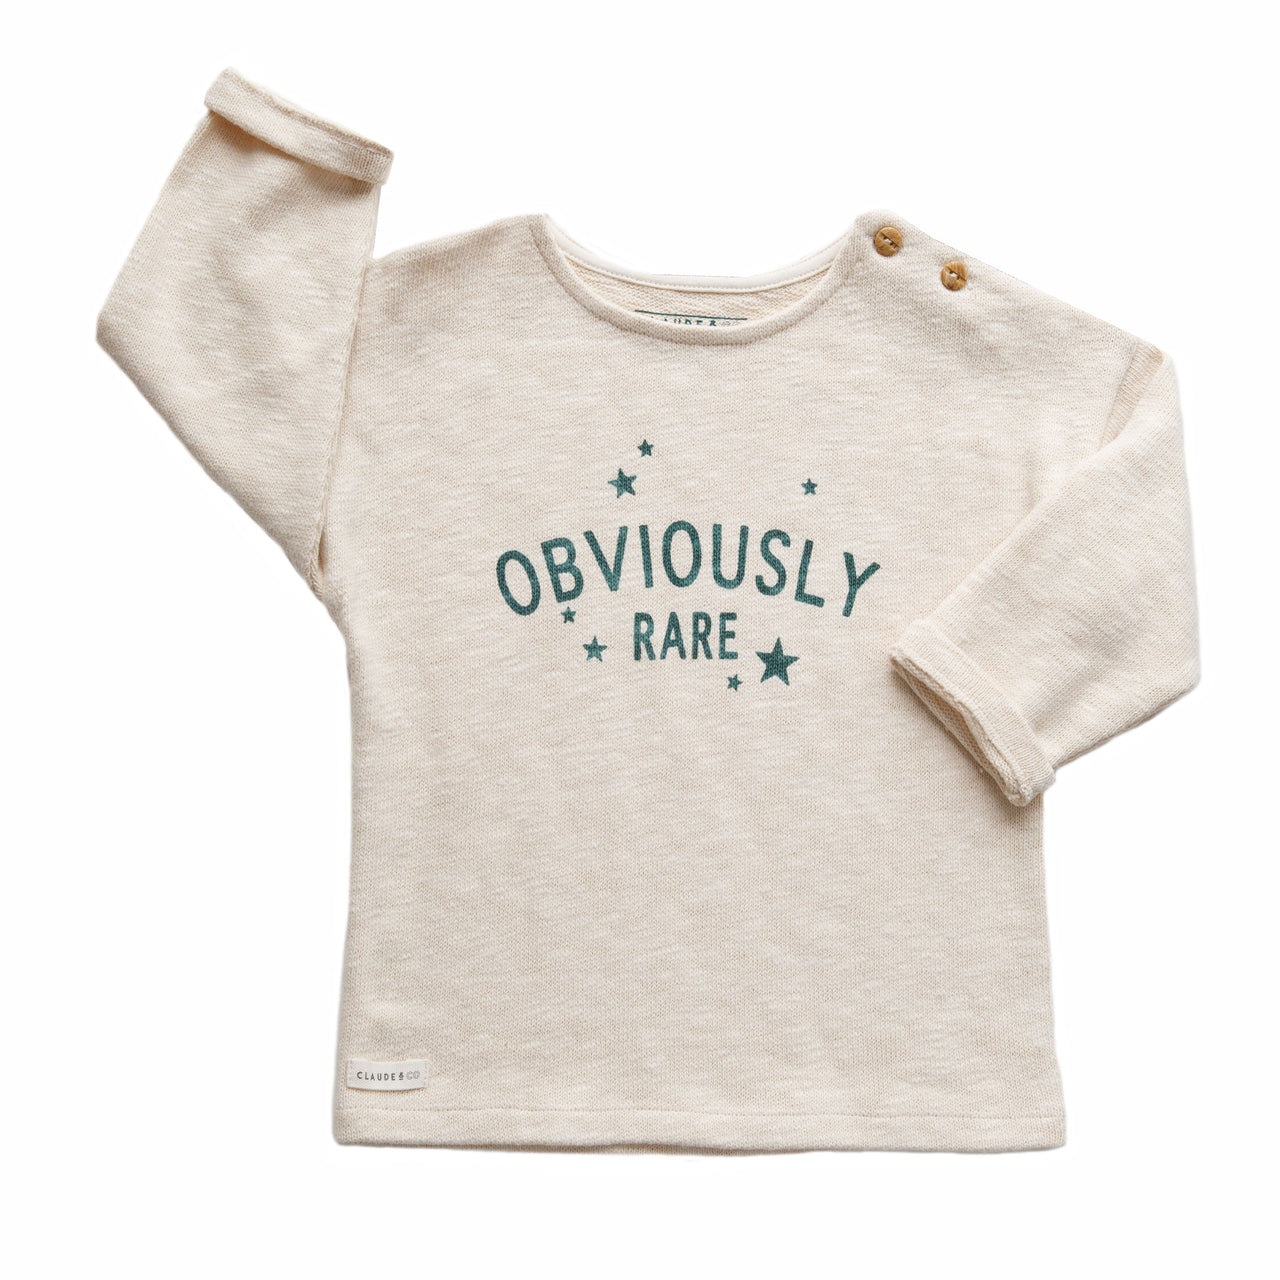 Claude and Co - Obviously Rare Knitwear Oatmeal Unisex - Claude & Co